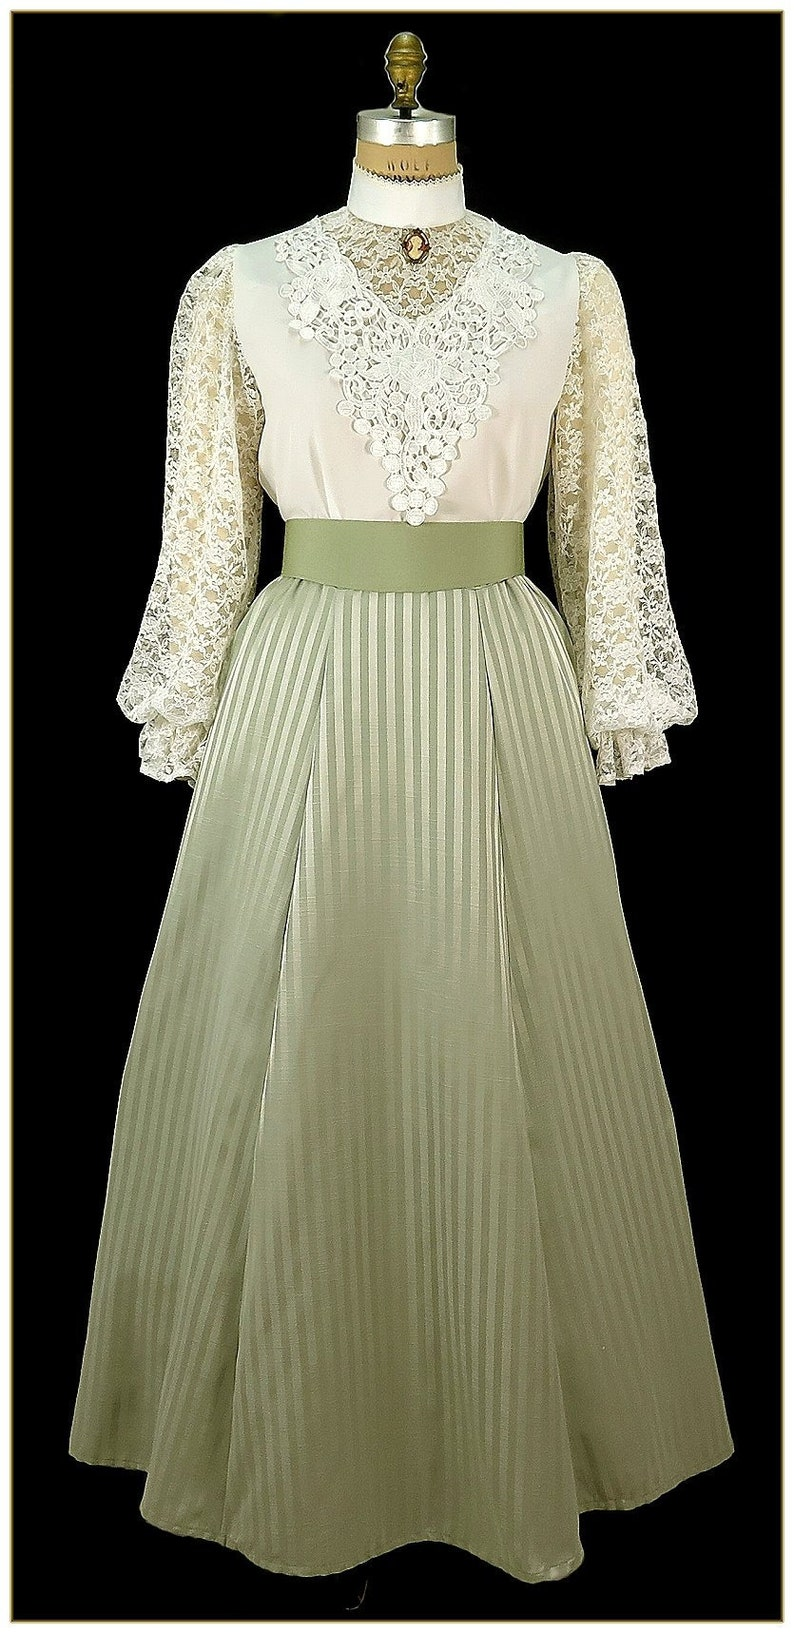 Edwardian Ladies Clothing – 1900, 1910s, Titanic Era 1890 -1905 Victorian Sage Two Tone Stripe Skirt $65.00 AT vintagedancer.com